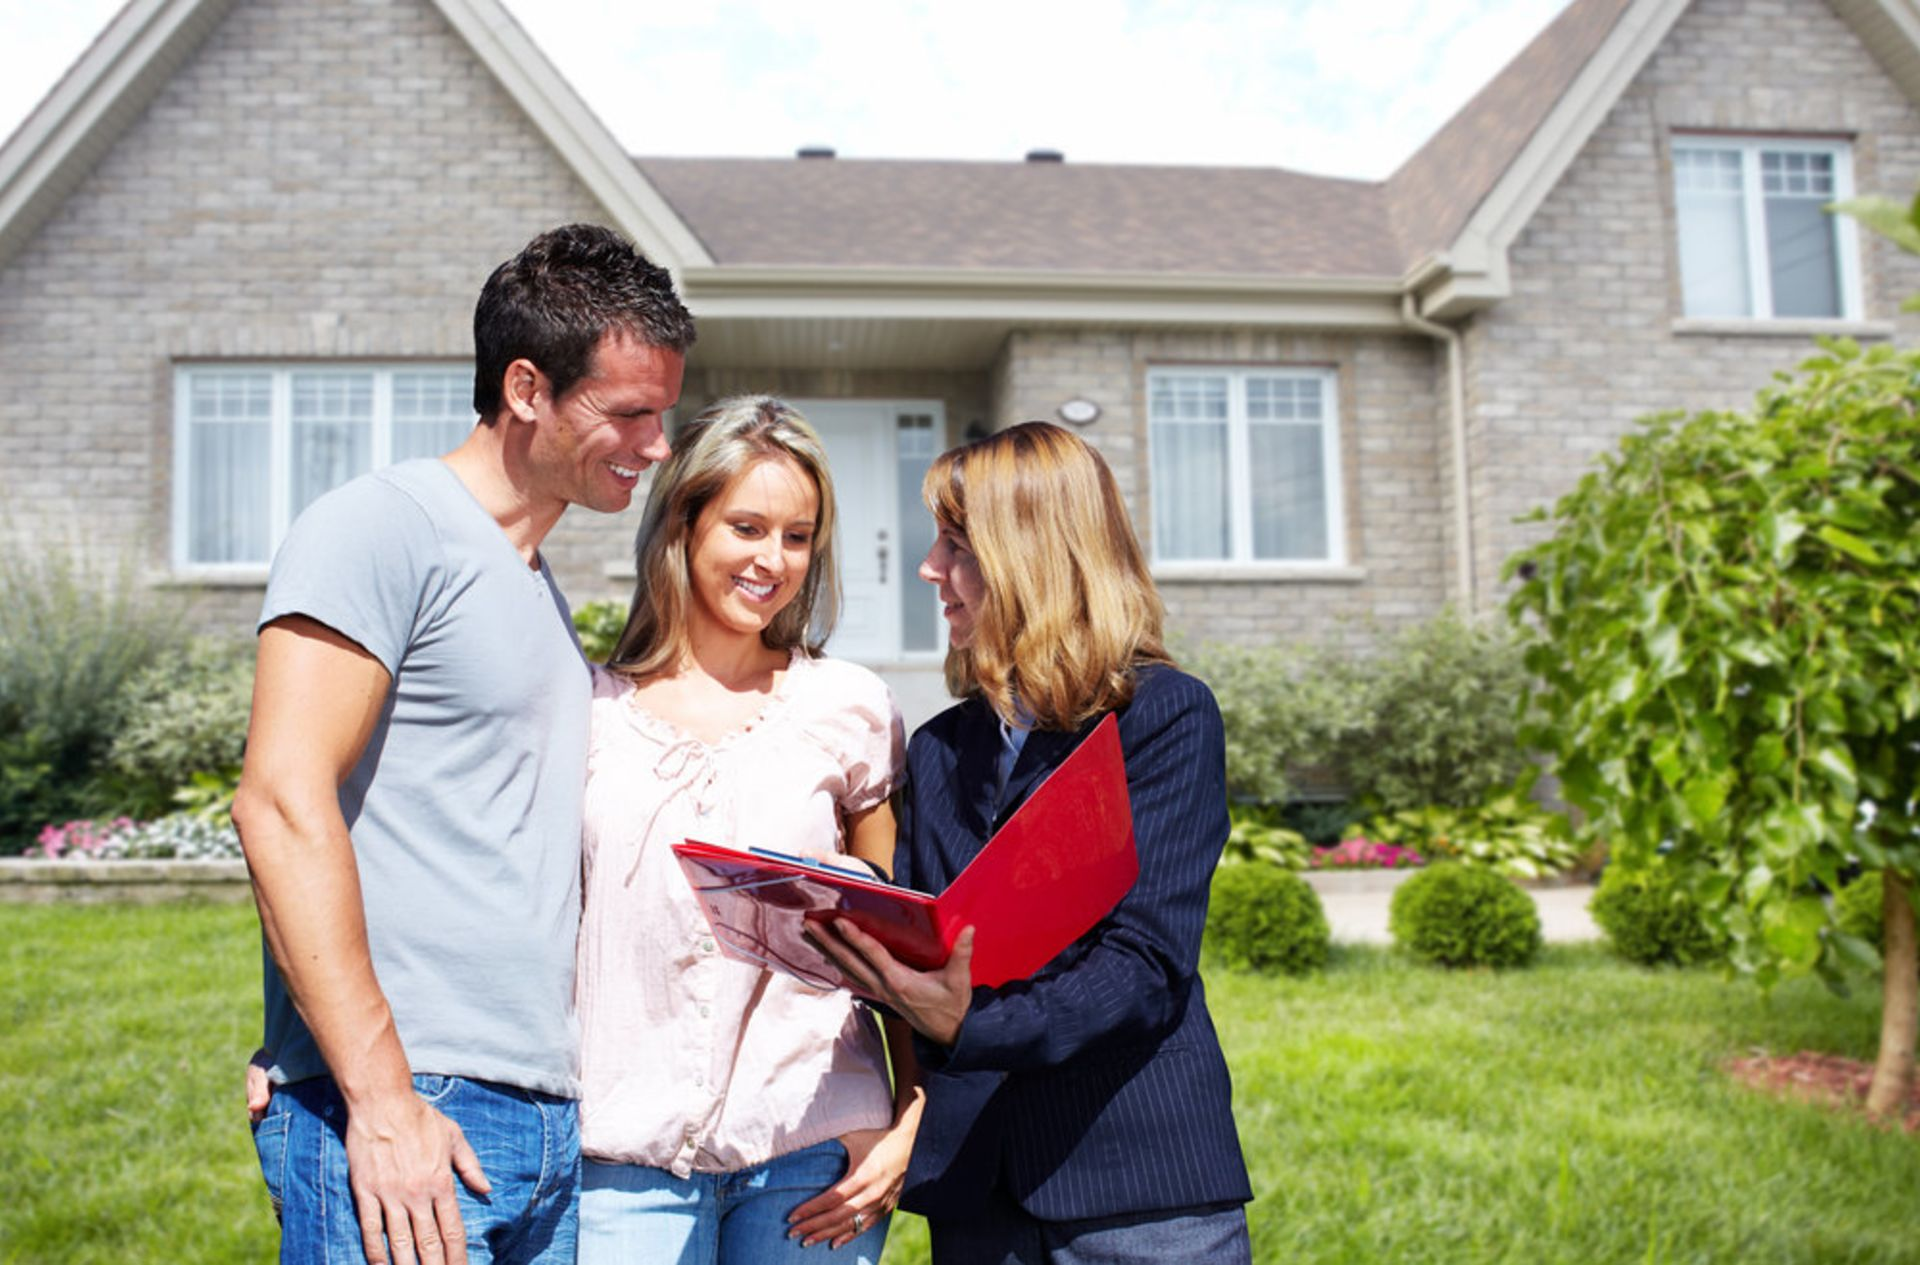 Top 4 Tips for Finding a Realtor in Longview, WA